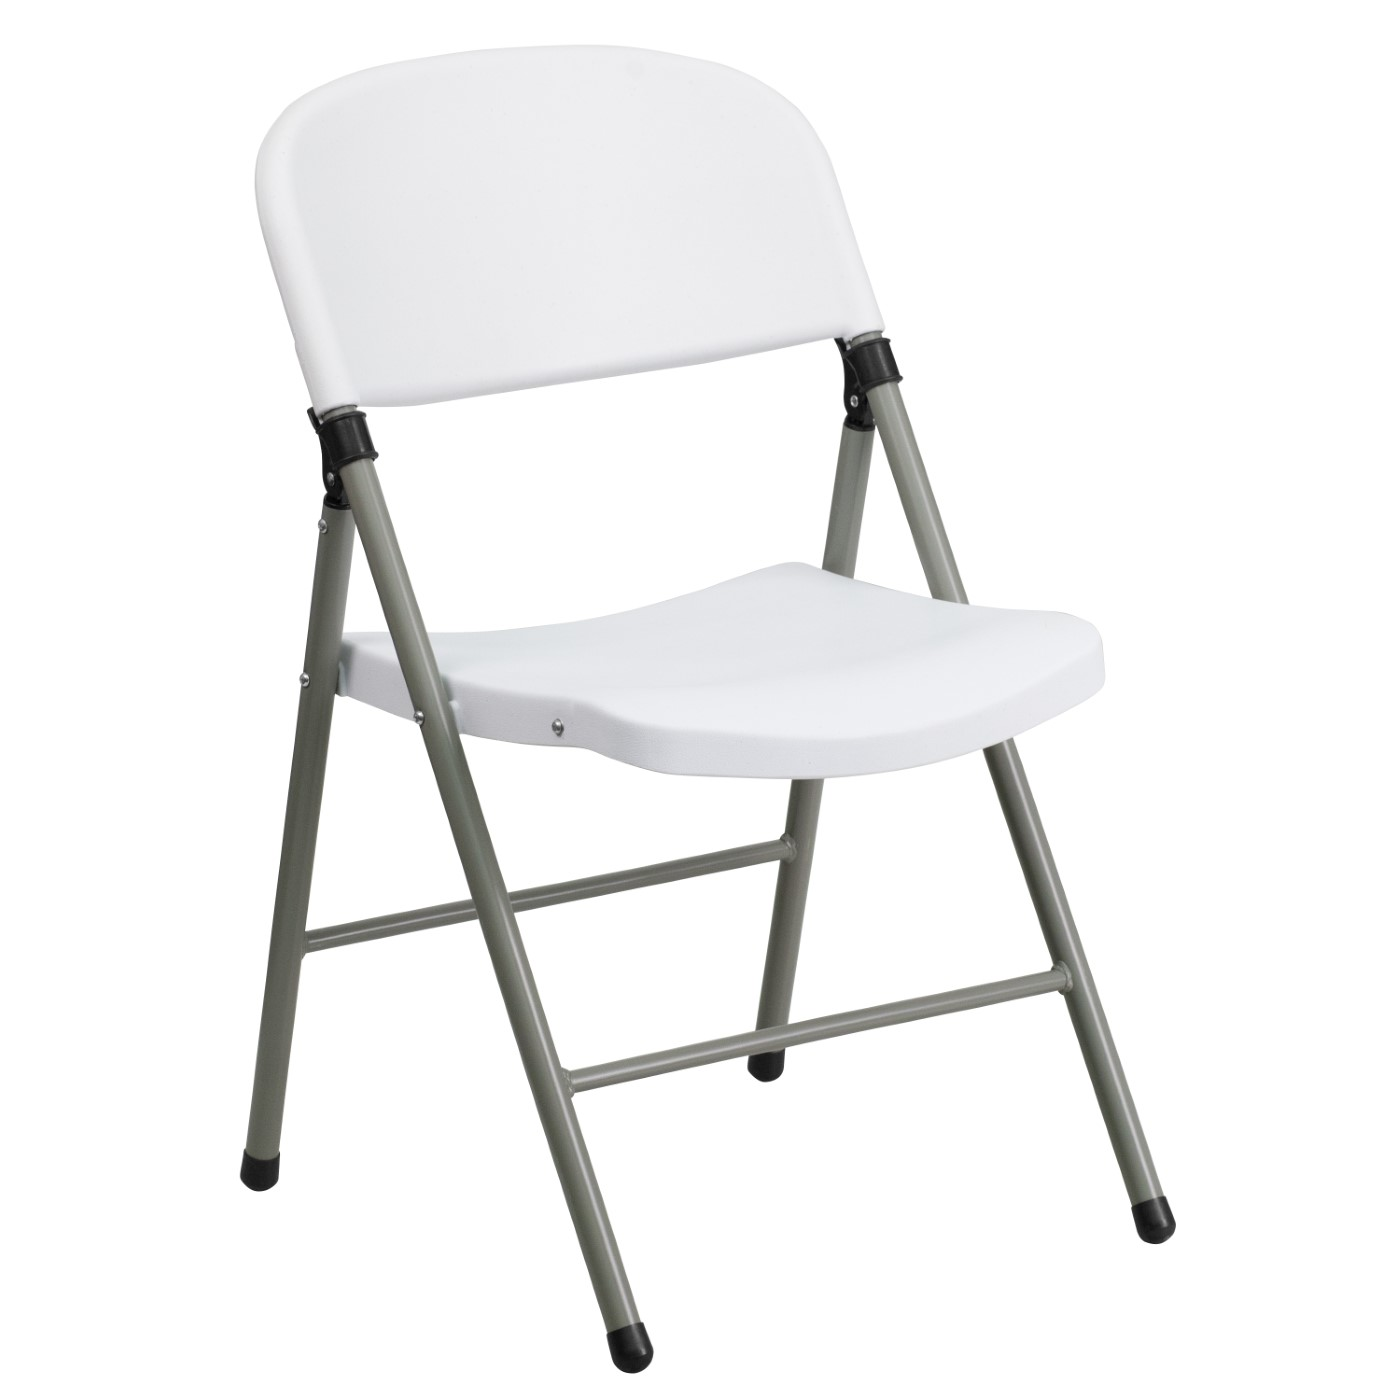 TOUGH ENOUGH Series 330 lb. Capacity White Plastic Folding Chair with Gray Frame